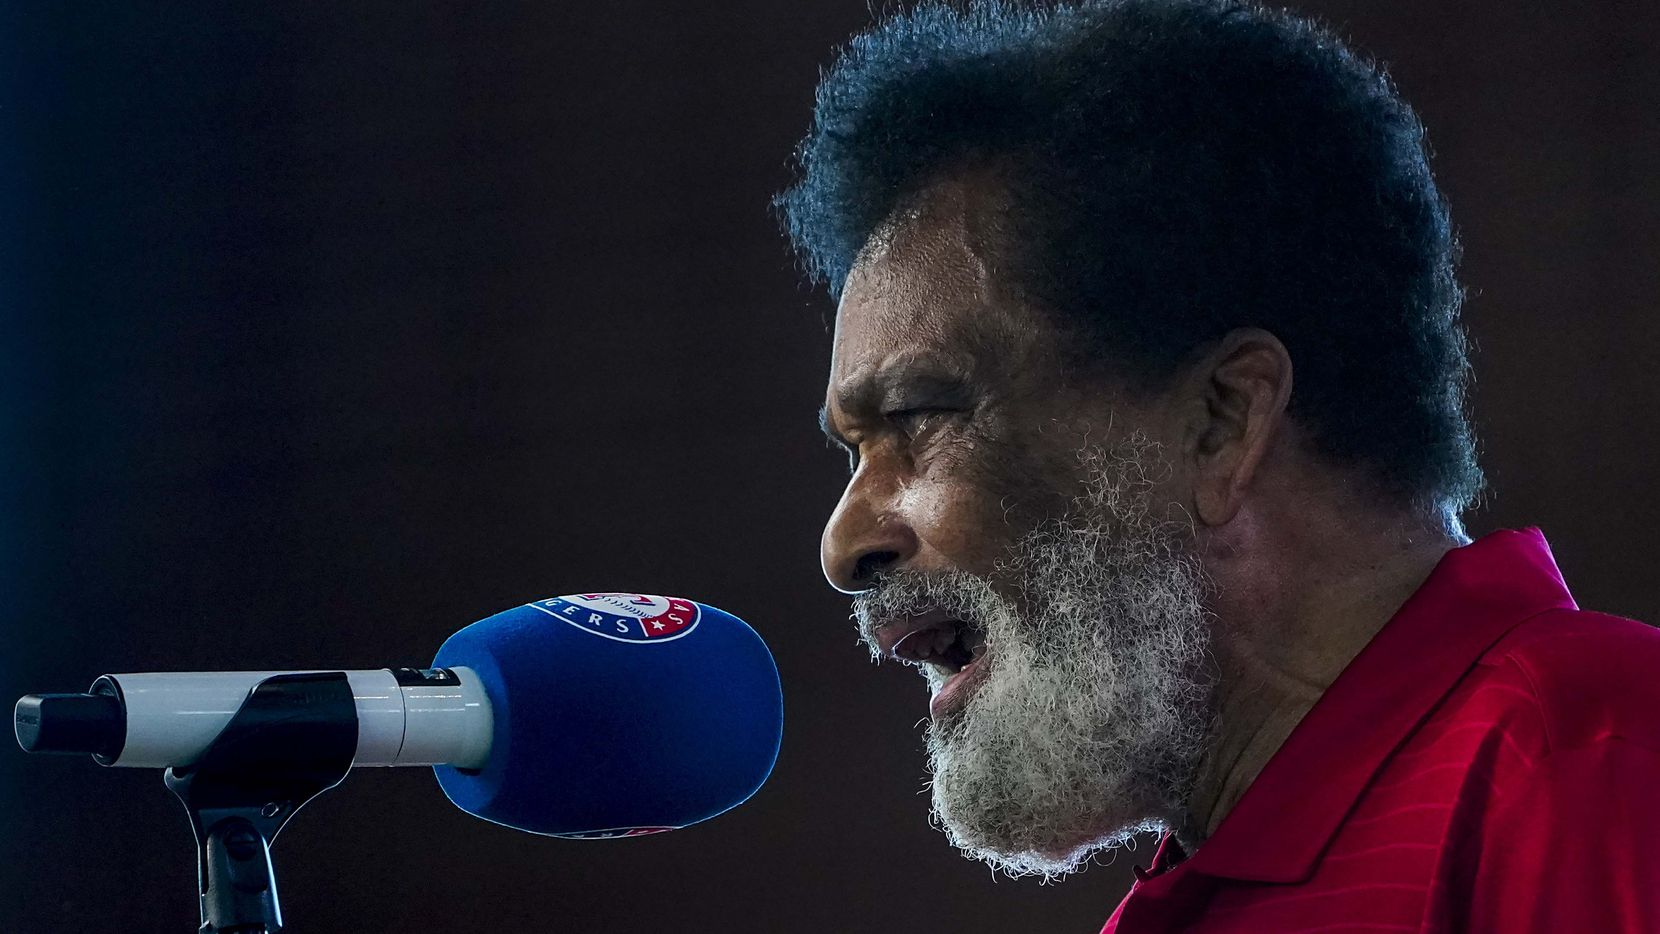 Charley Pride sings the national anthem before the Texas Rangers faced the Colorado Rockies on opening day at Globe Life Field on Friday, July 24, 2020.